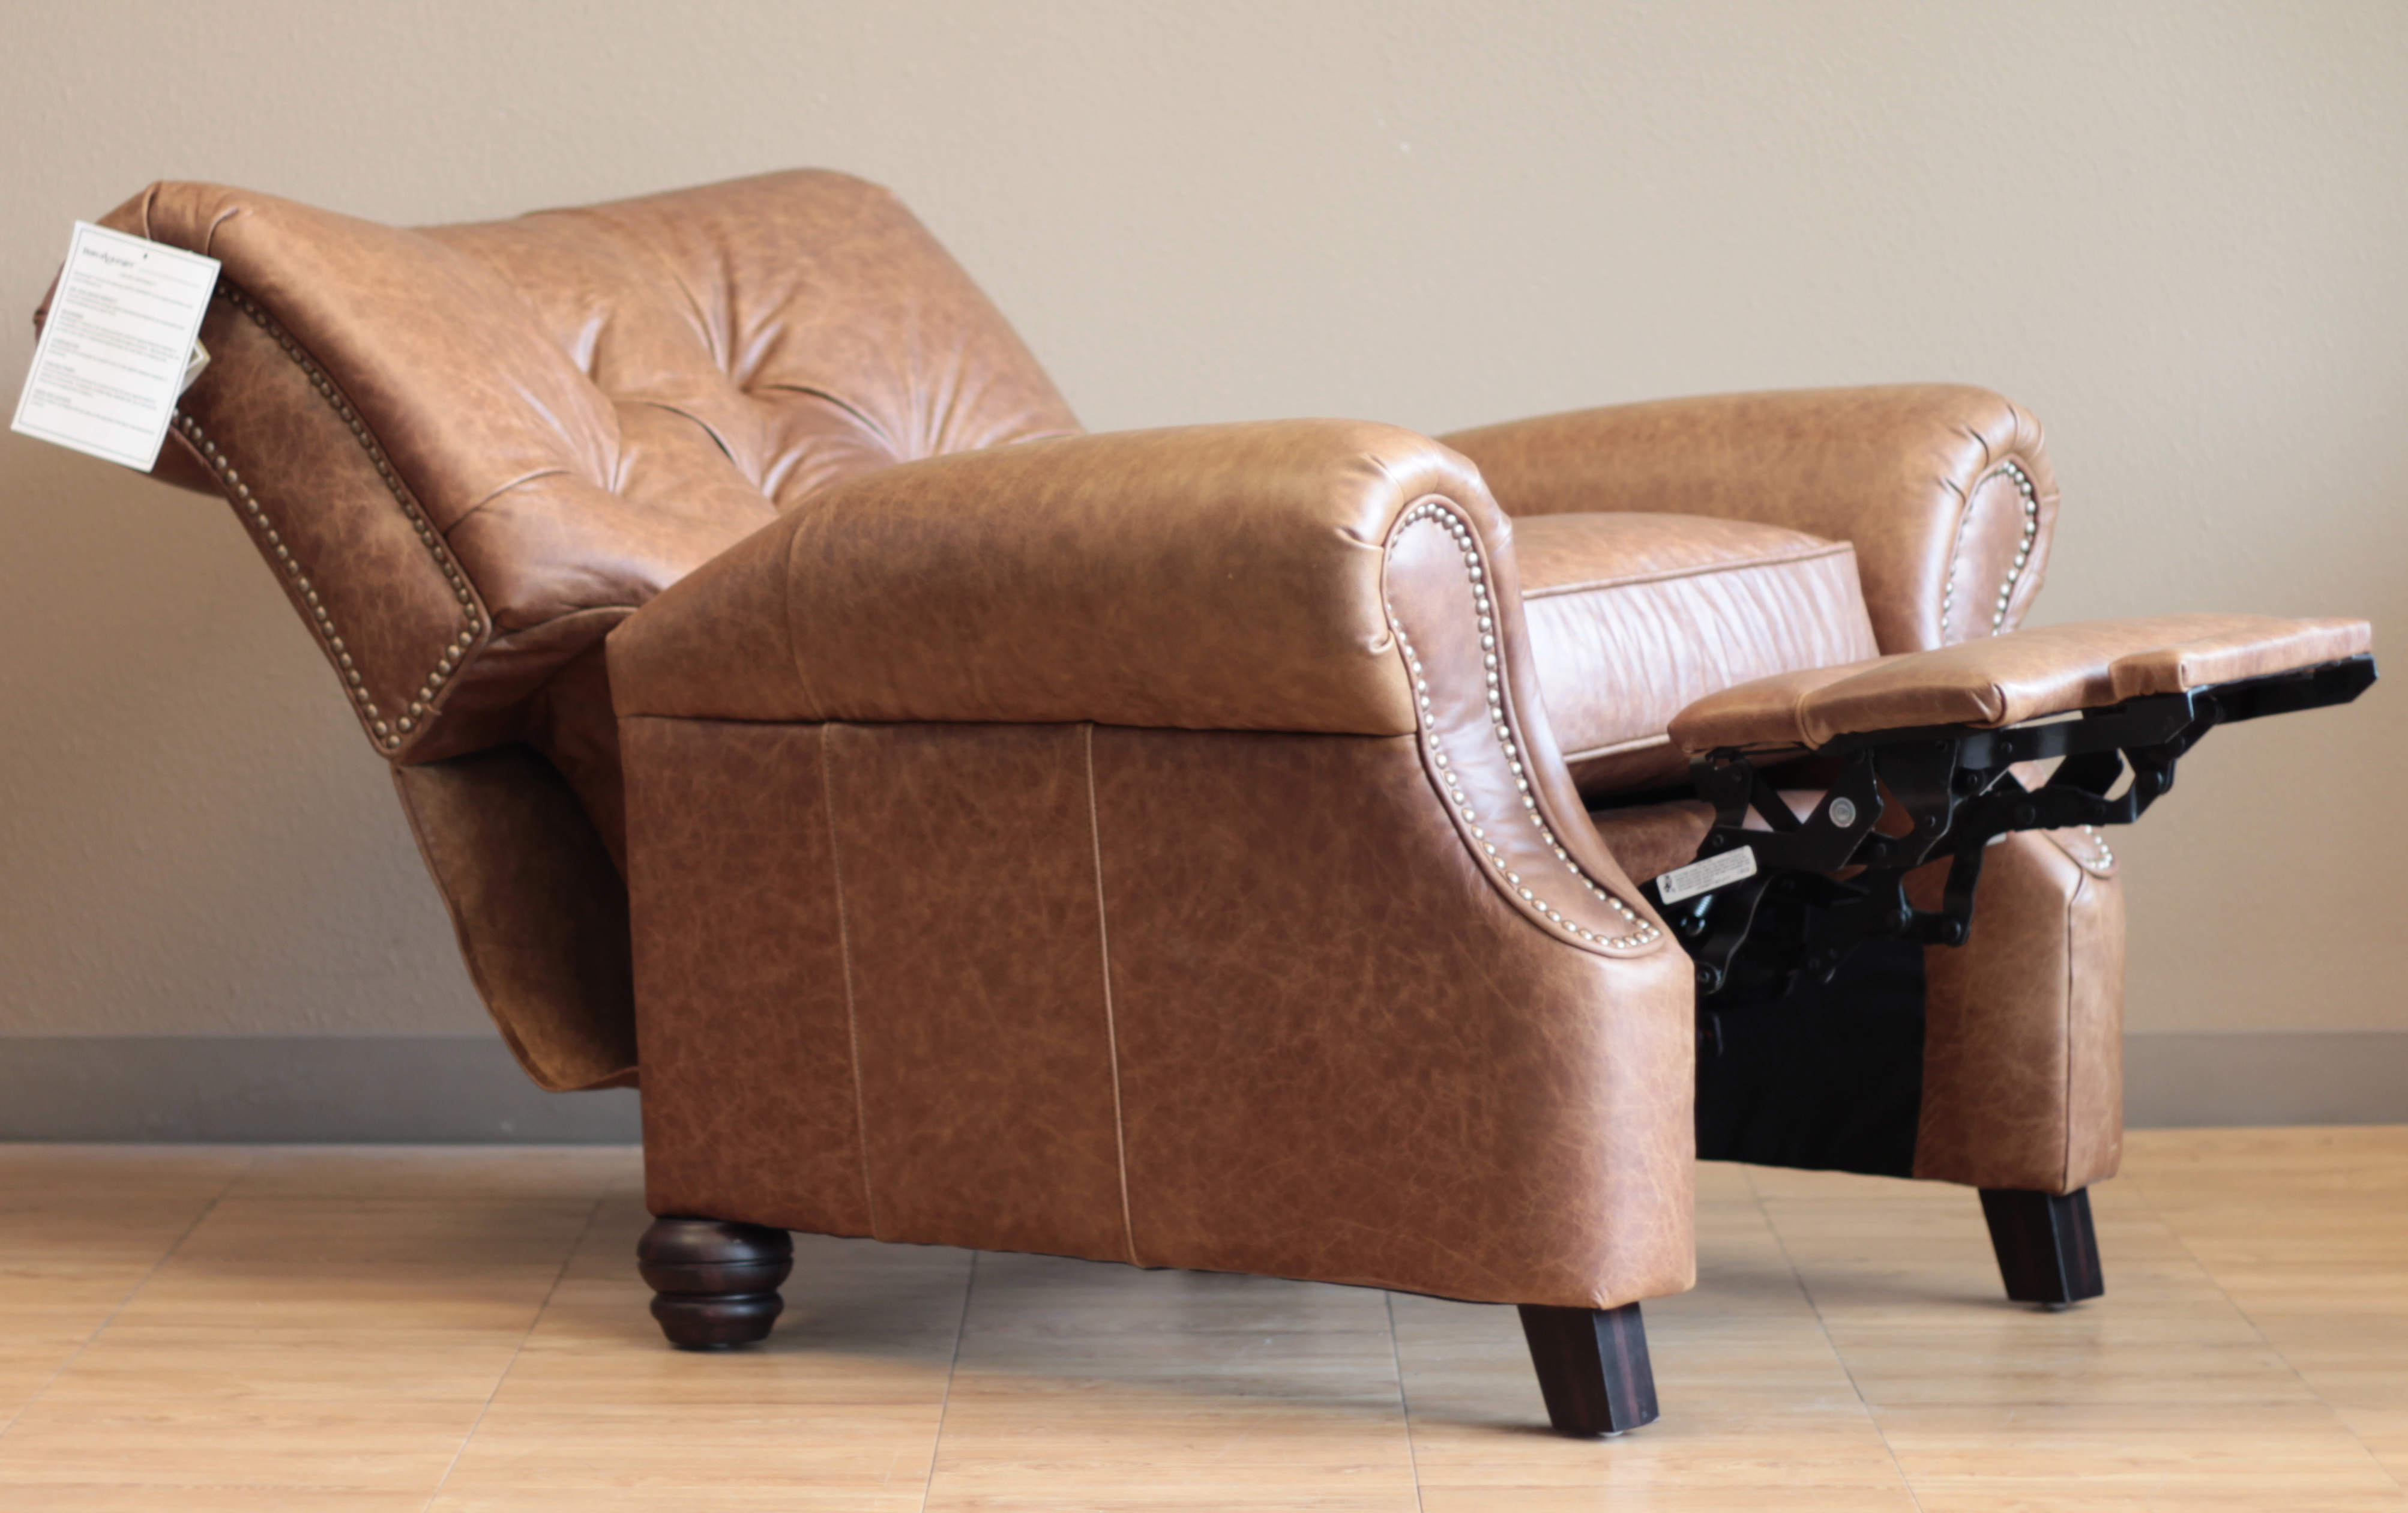 Barcalounger Phoenix II Leather Recliner Chair : saddle leather recliner - islam-shia.org